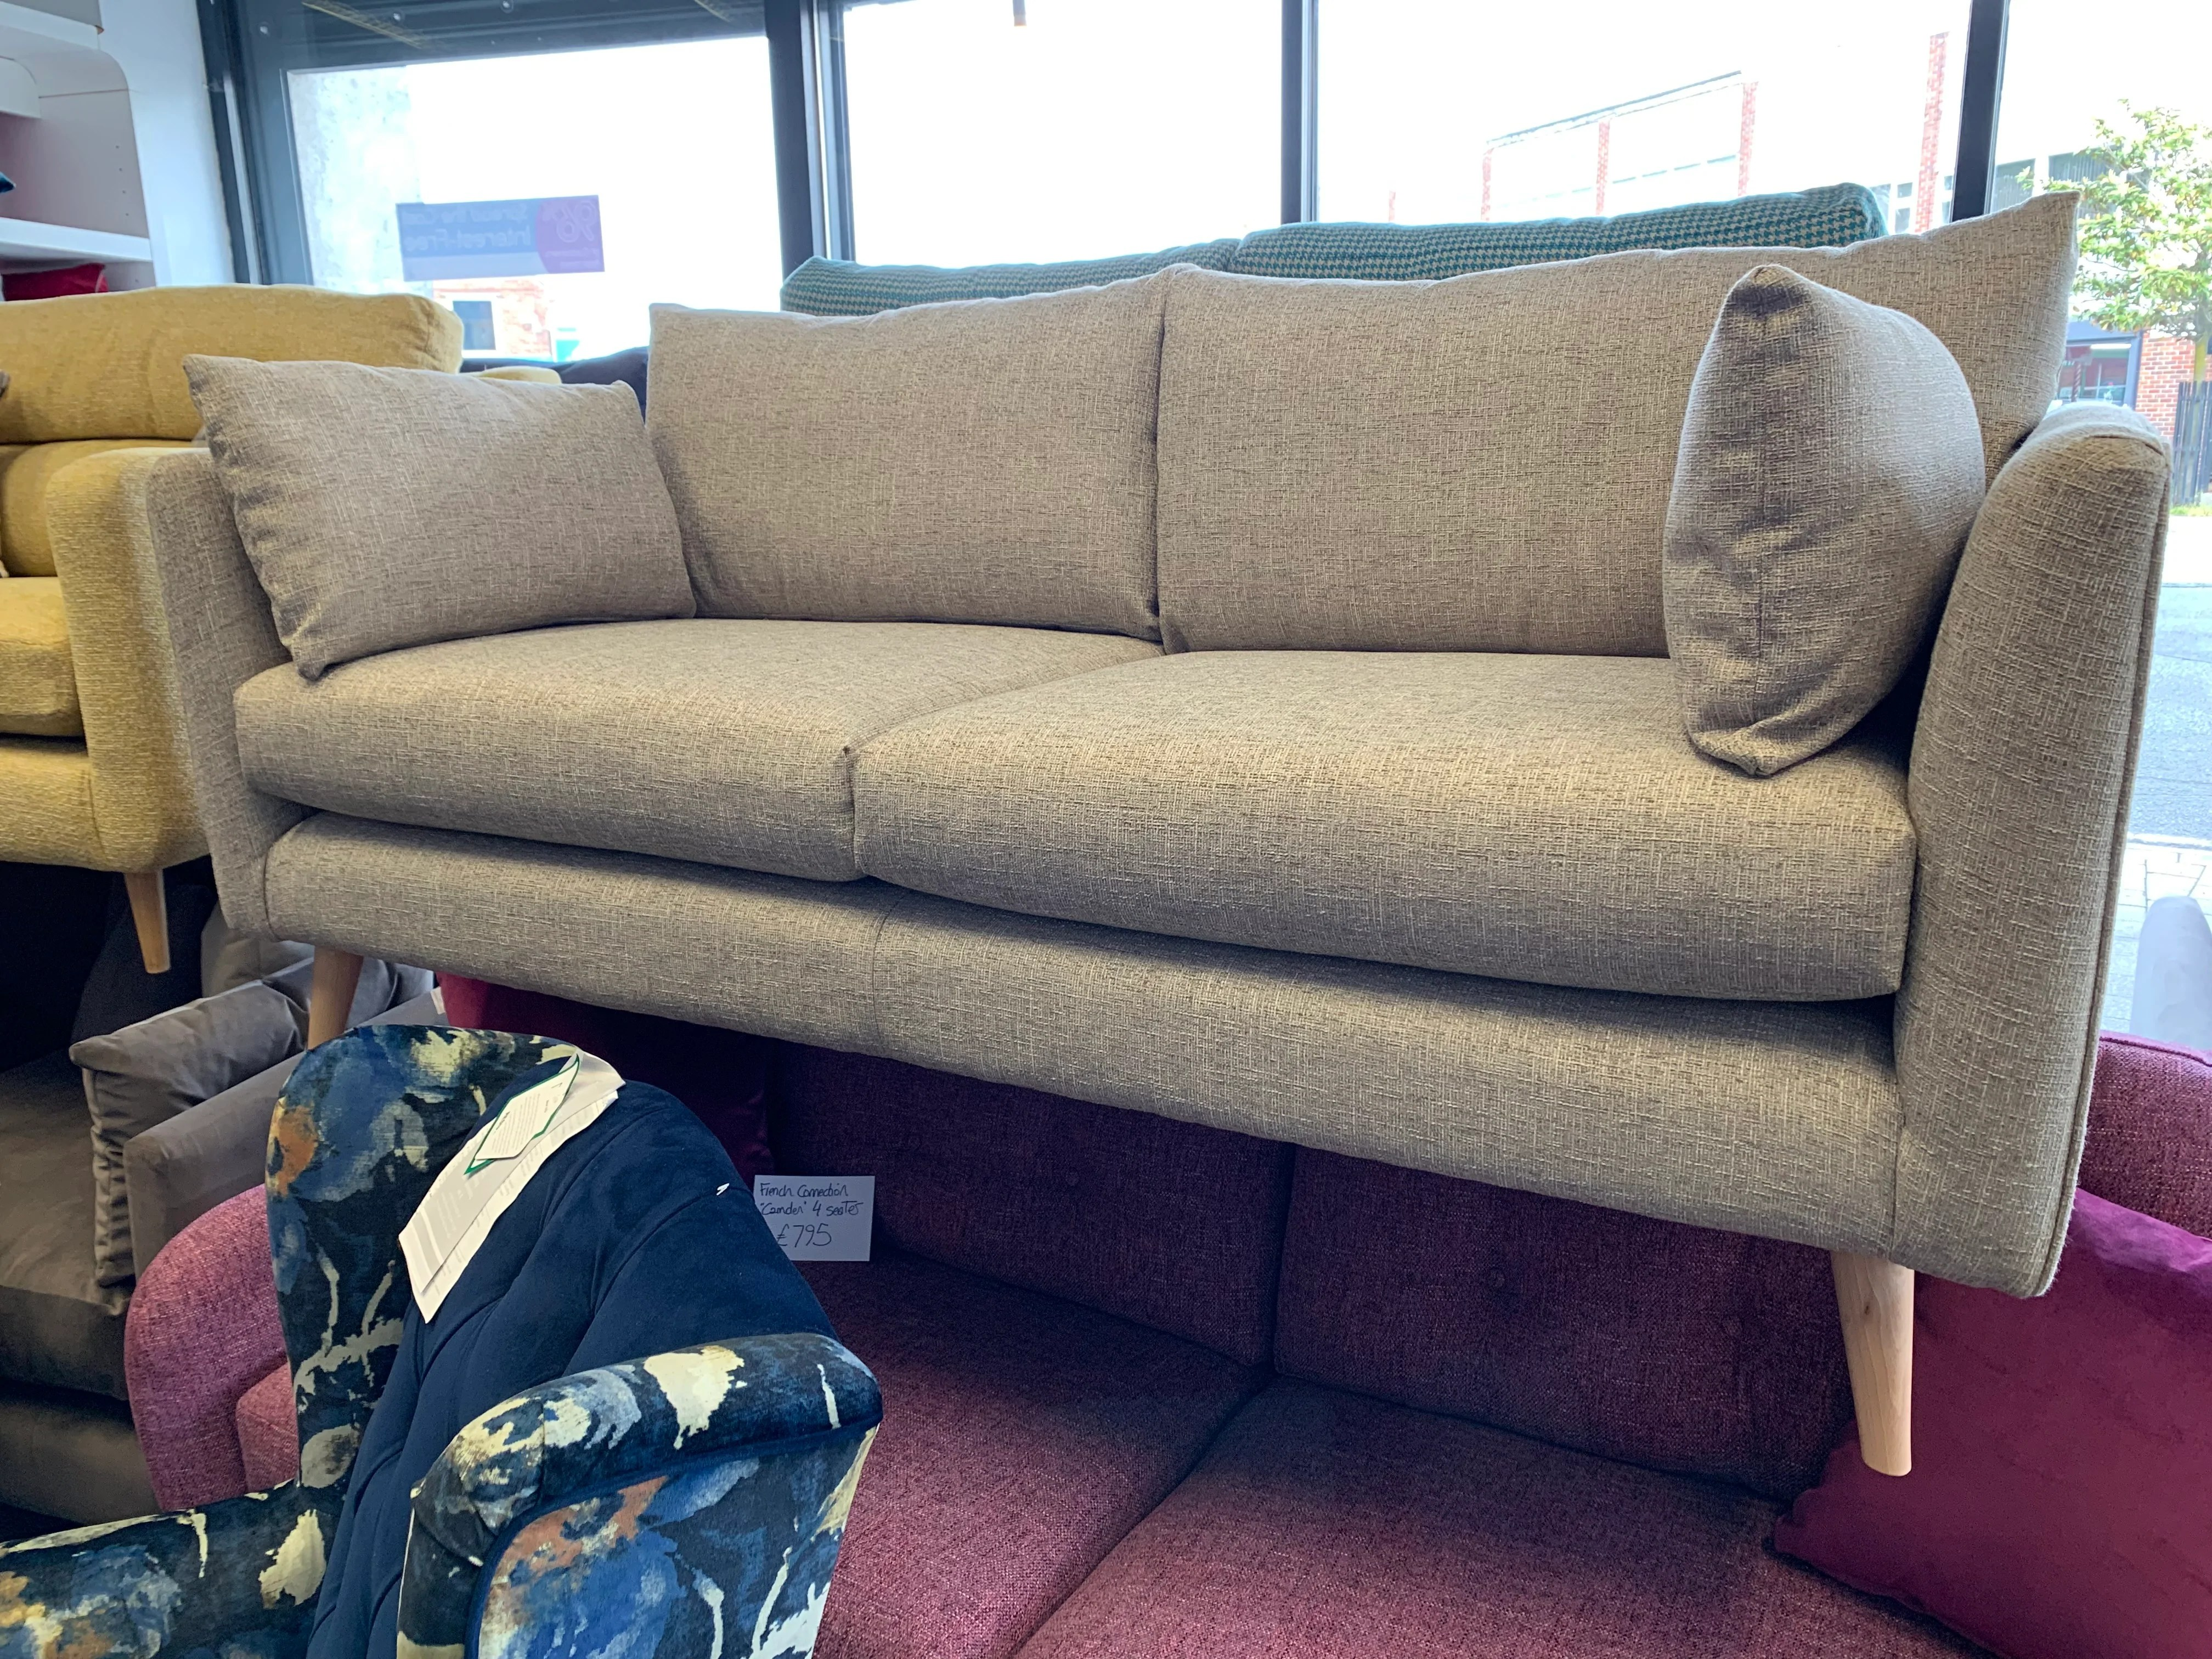 Ex Display Sofa A Rjr For Debenhams Ravello 2 Seater Sofa In Natural Weave Fabric Rrp 899